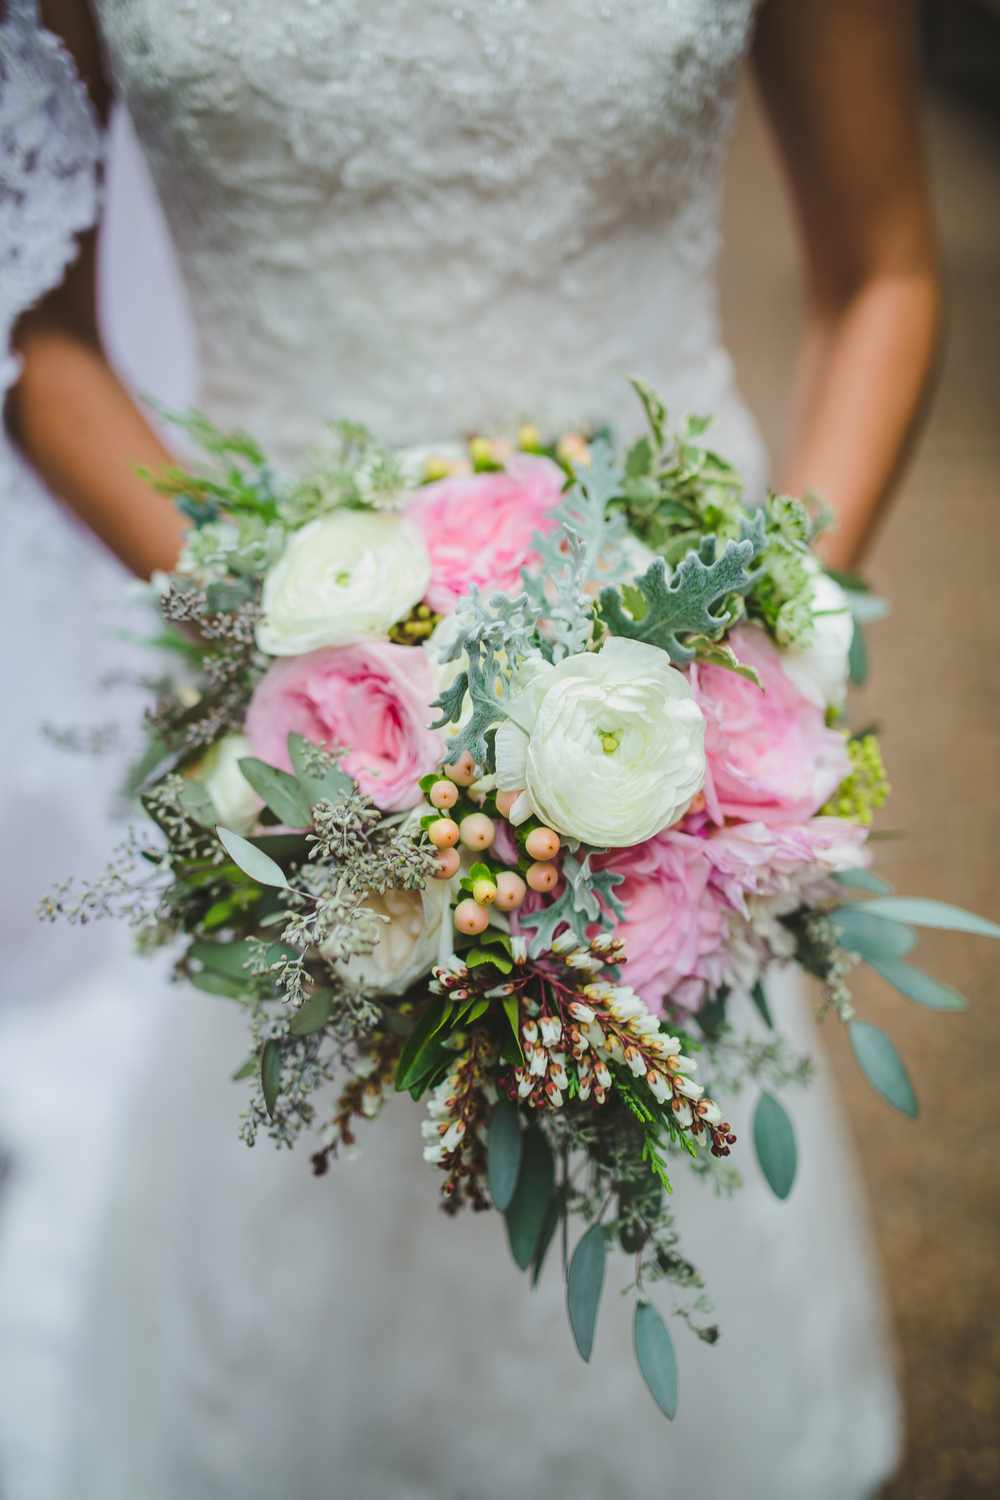 Whimsical garden bridal bouquet // Rosemary & Finch Floral Design